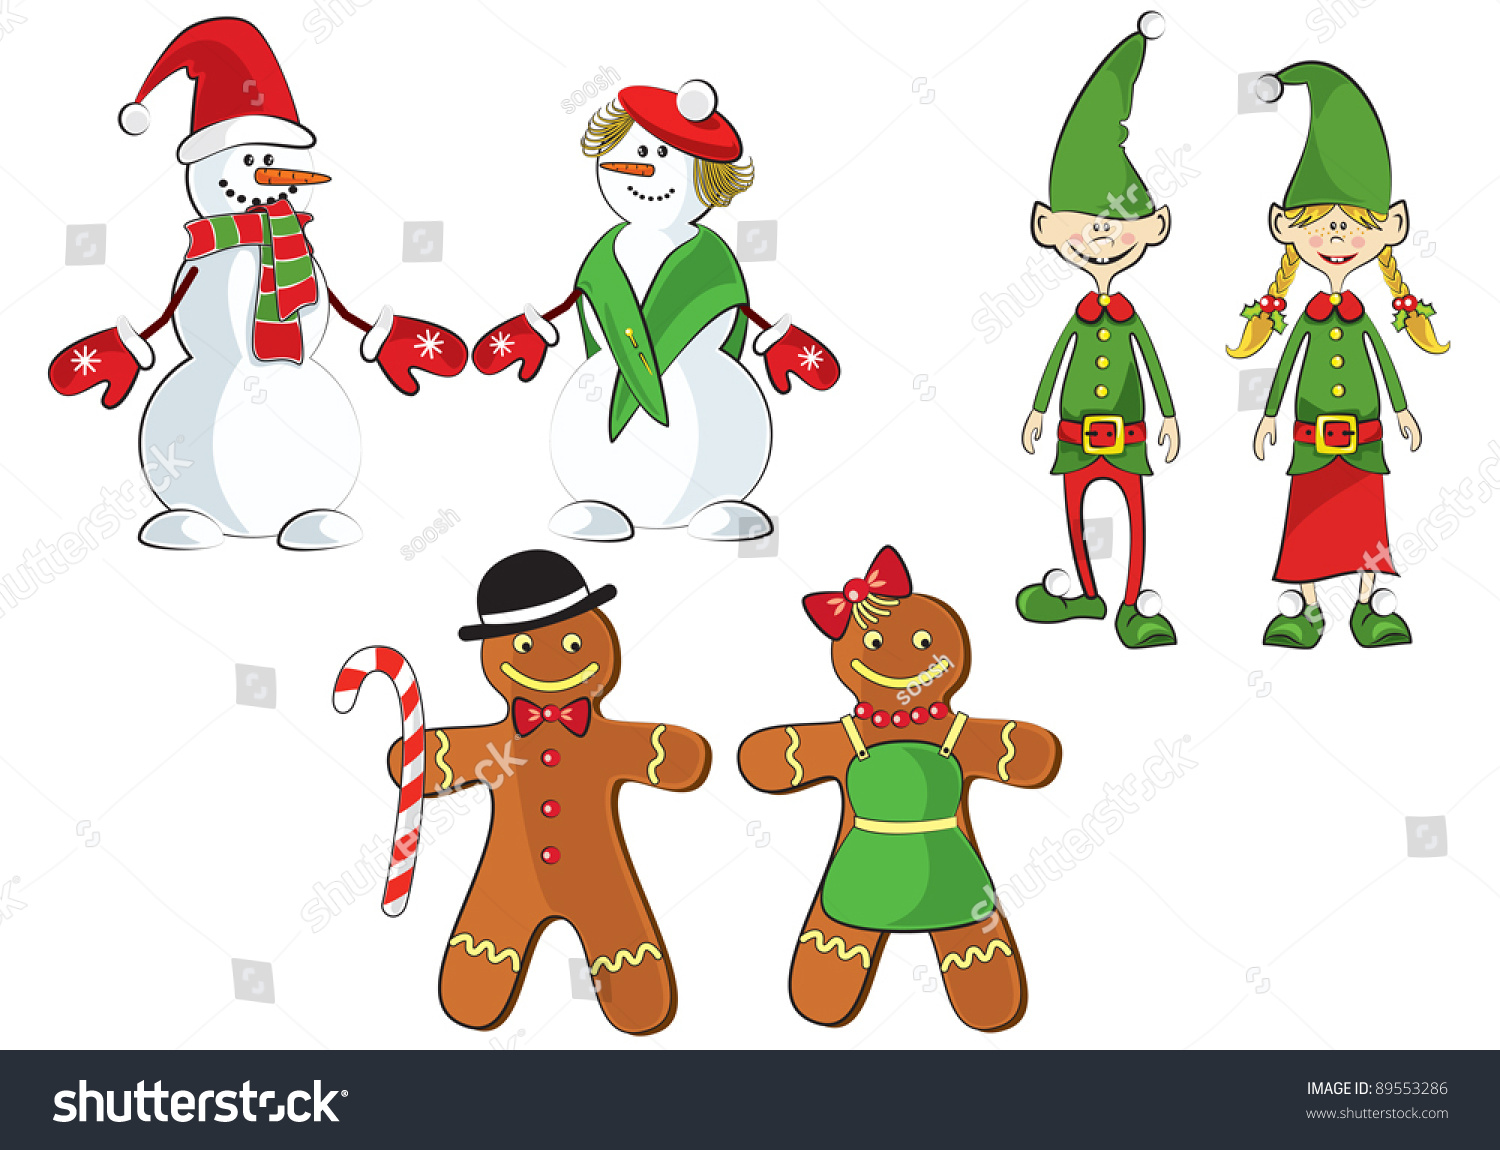 Set of Christmas elves from Santa team singing,playing music,holding ...